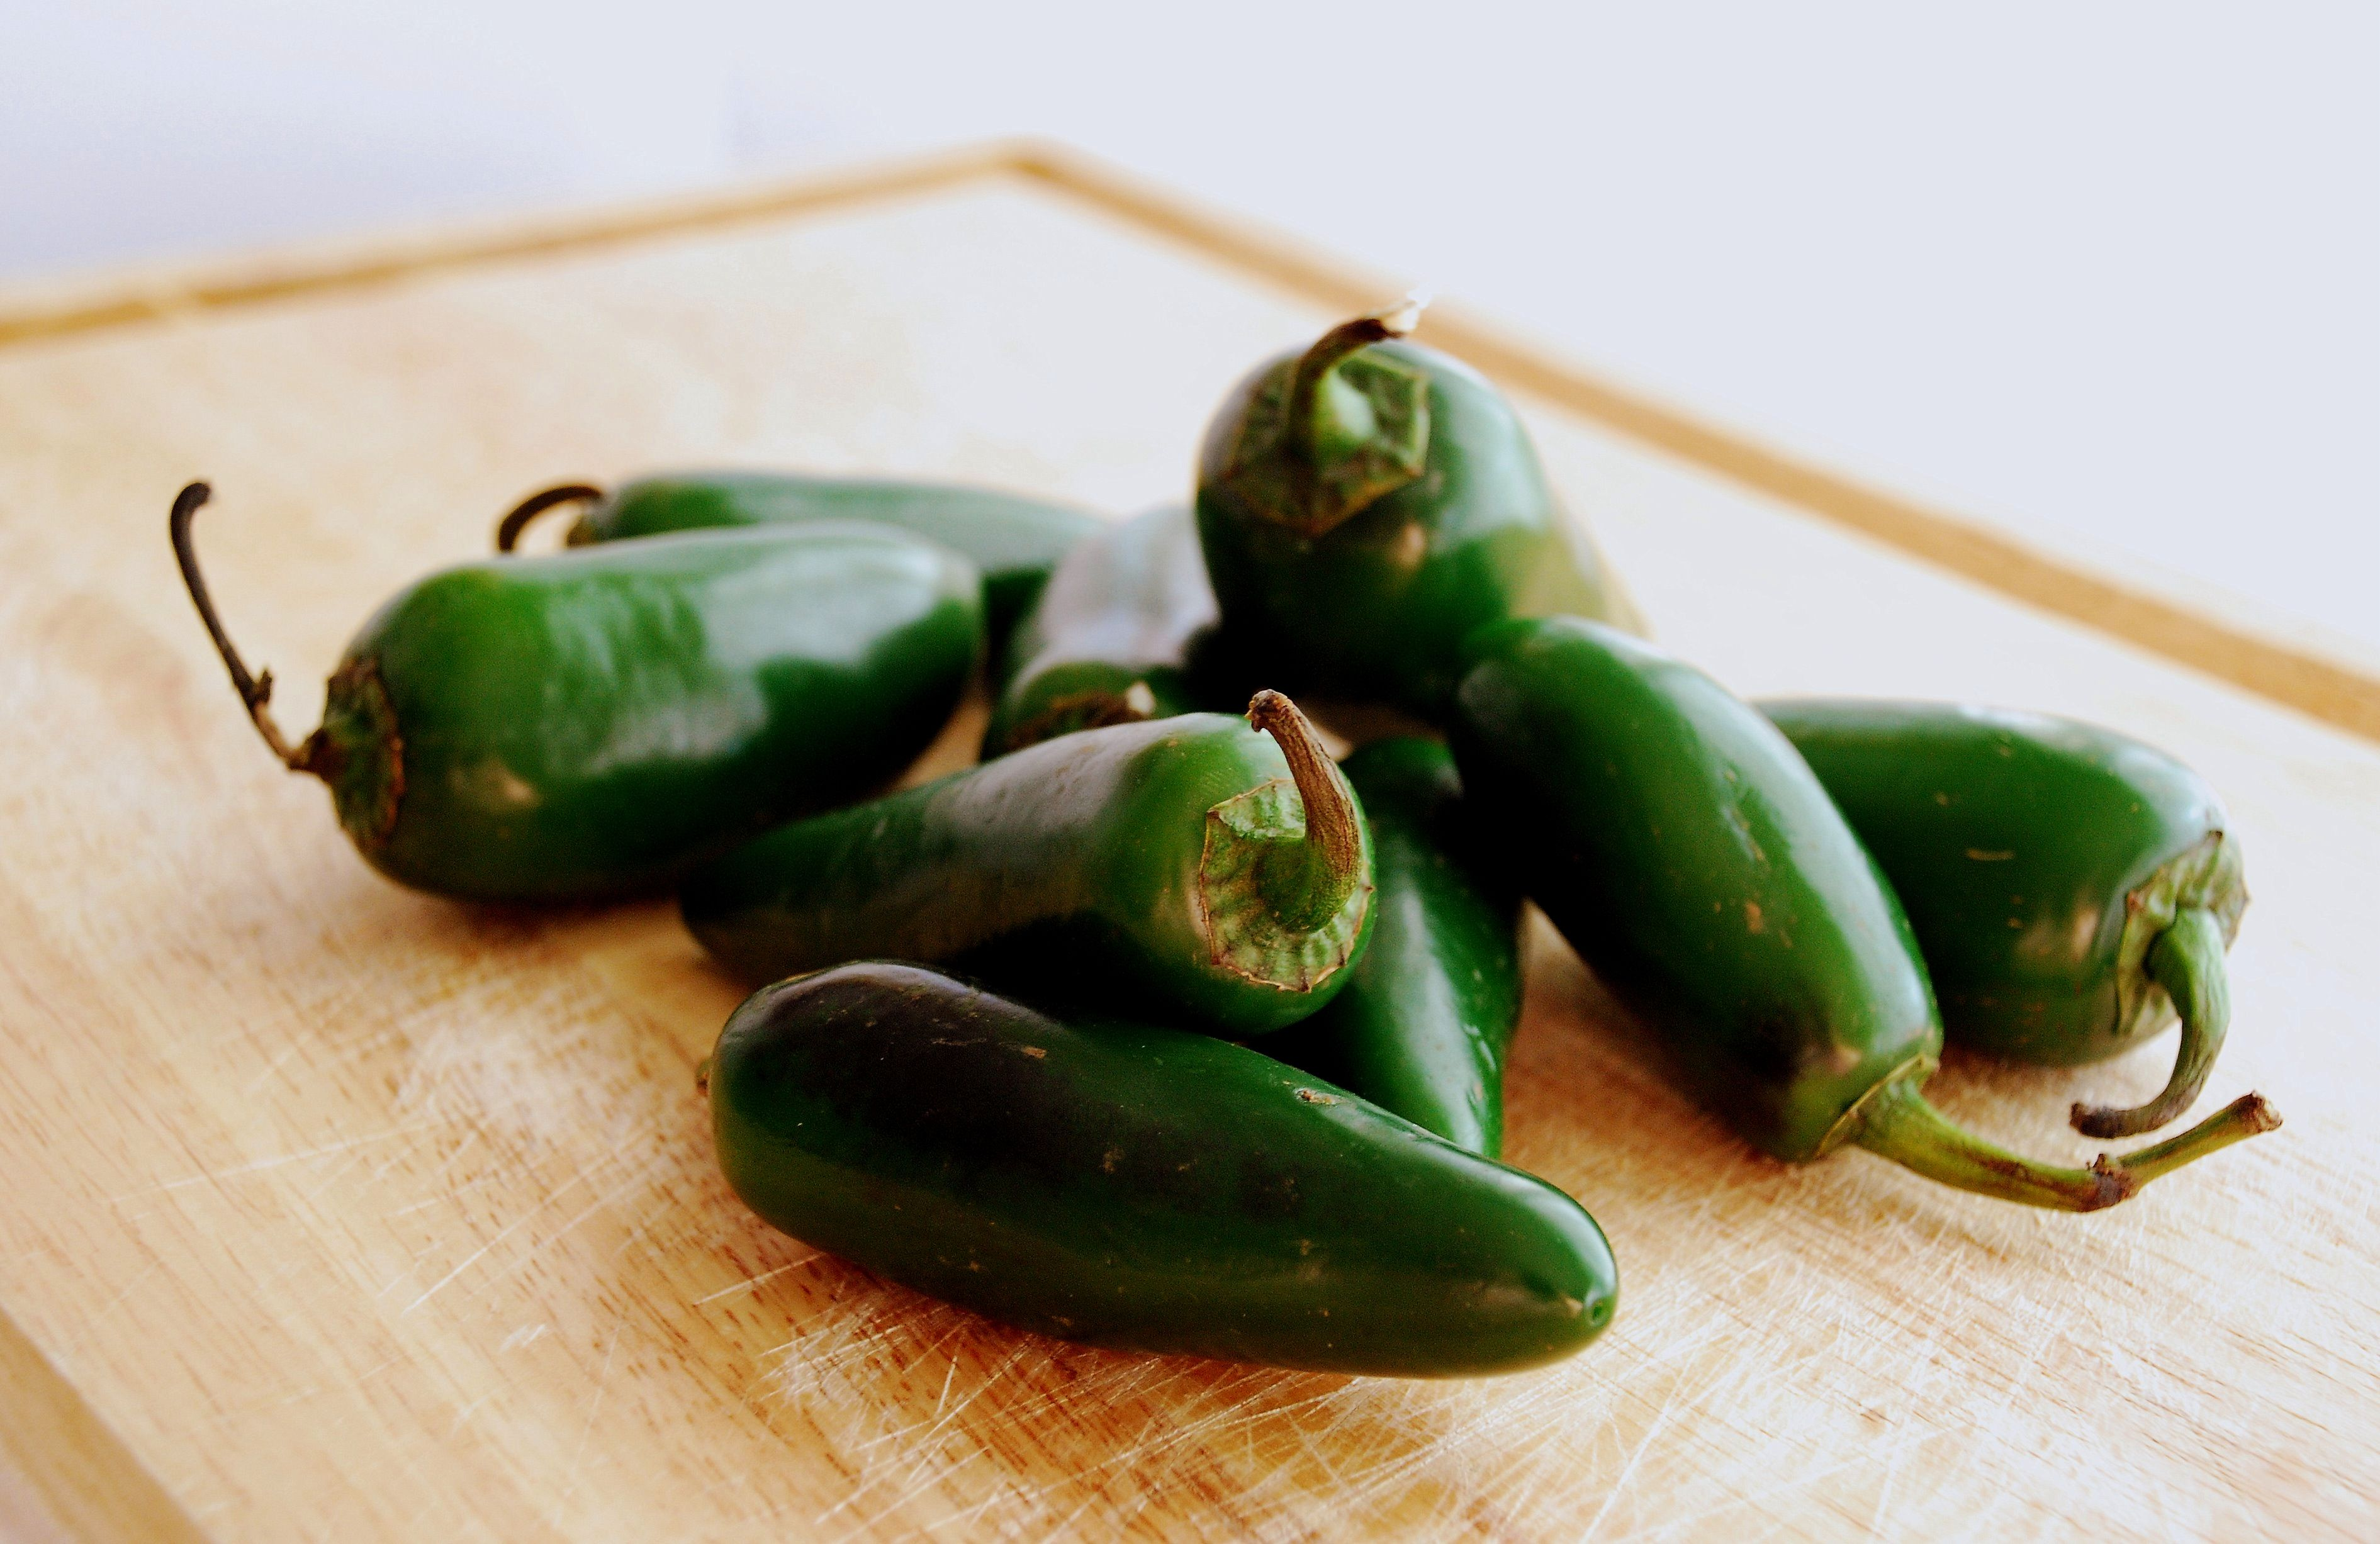 Freeze Jalapeno Peppers to Enjoy Them Year-Round